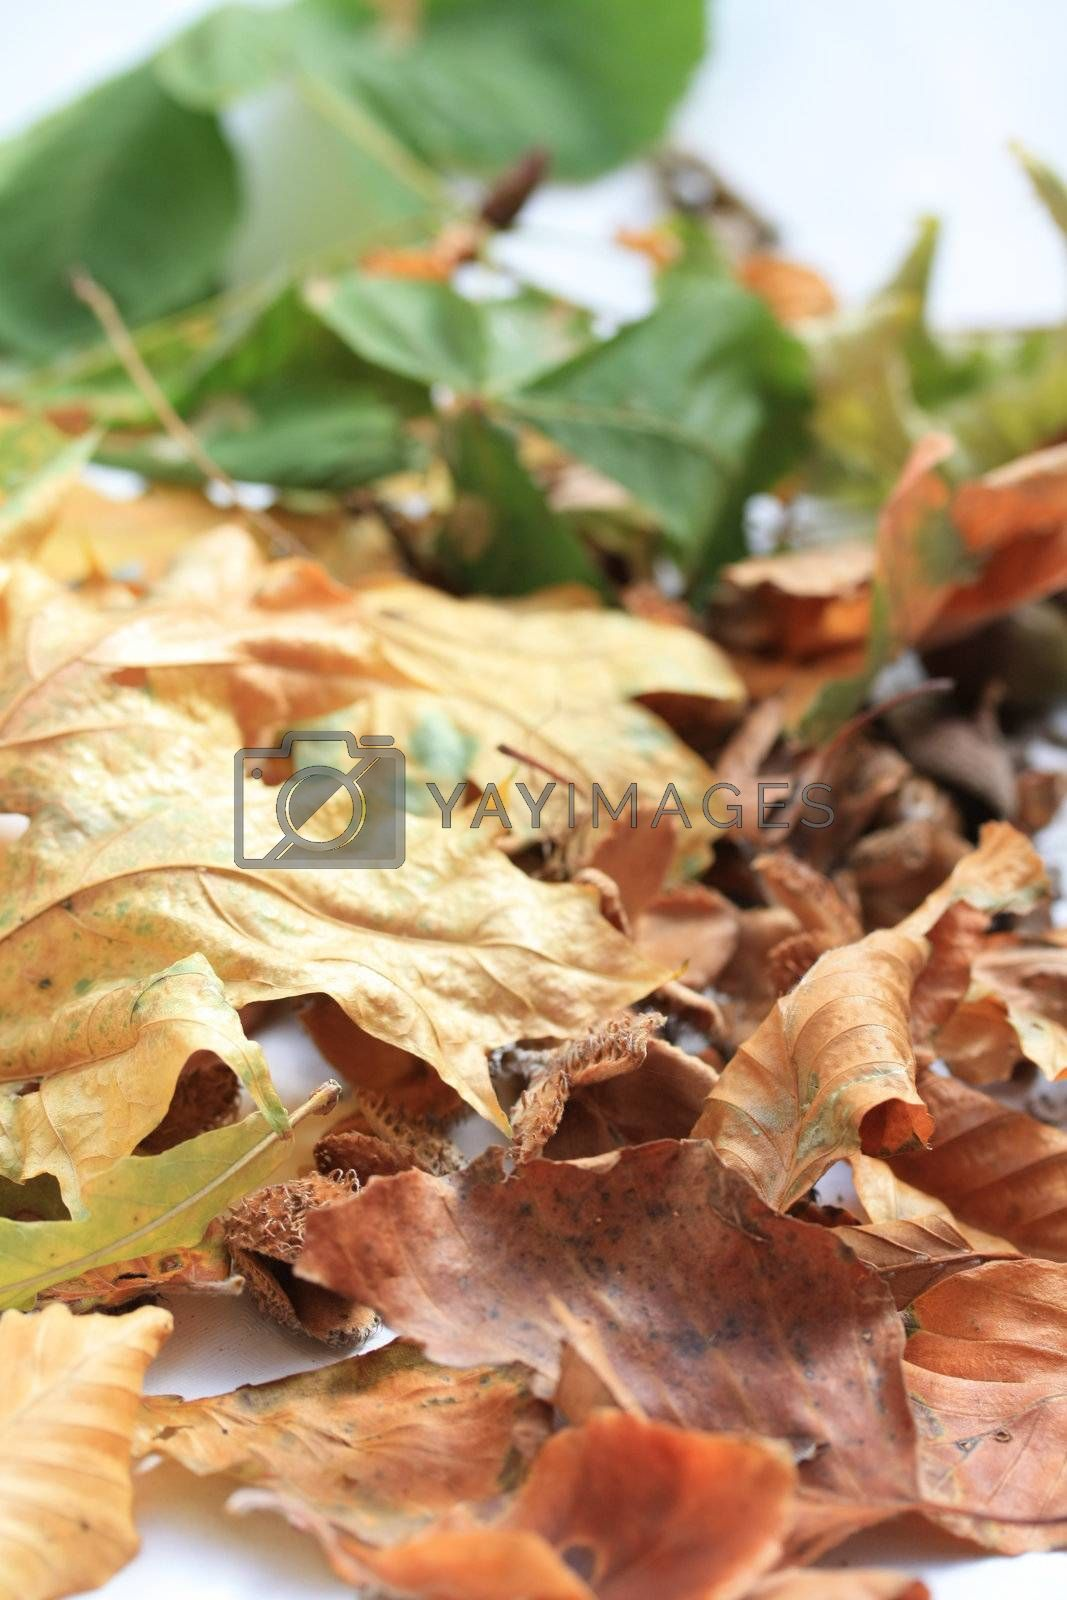 Royalty free image of Autumn leaves by studioportosabbia